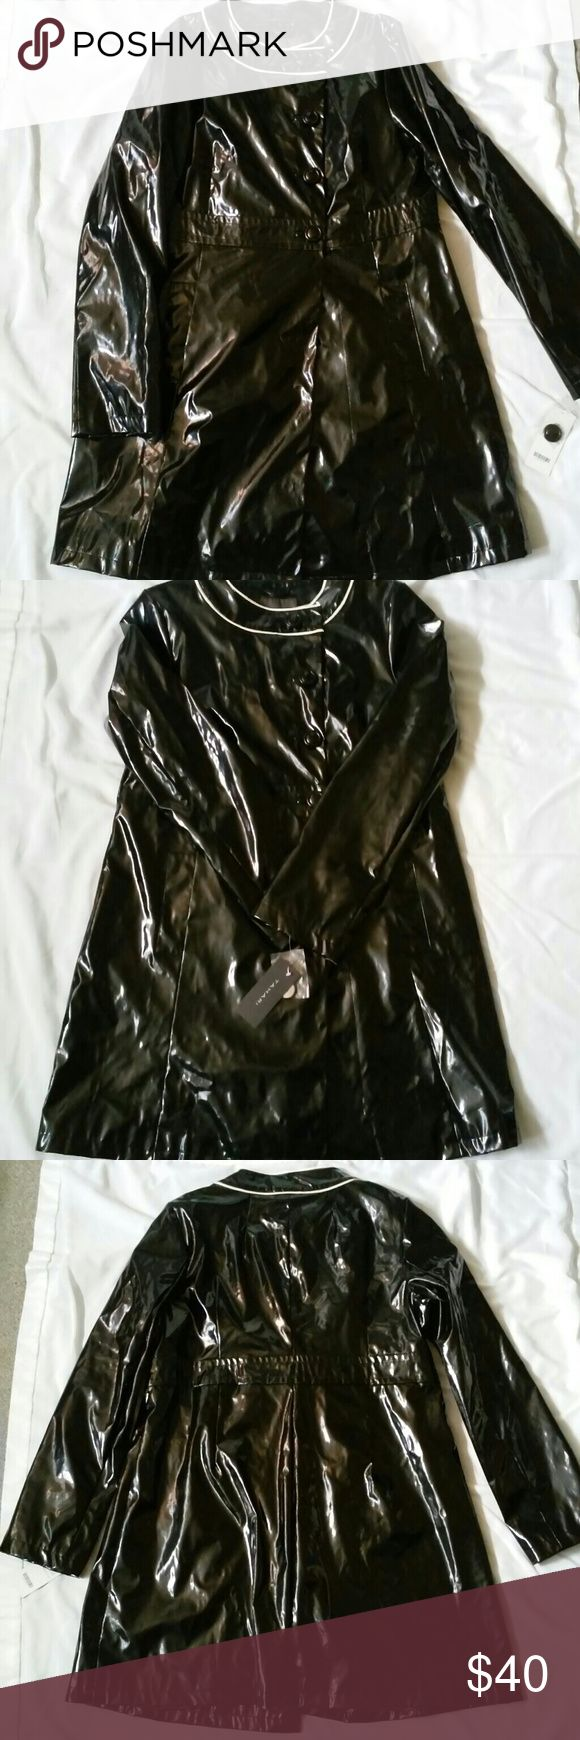 Tahari Coat Tahari Judy raincoat, patent leather. No stains or tears. Completely lined. Never worn. Tahari Jackets & Coats Trench Coats